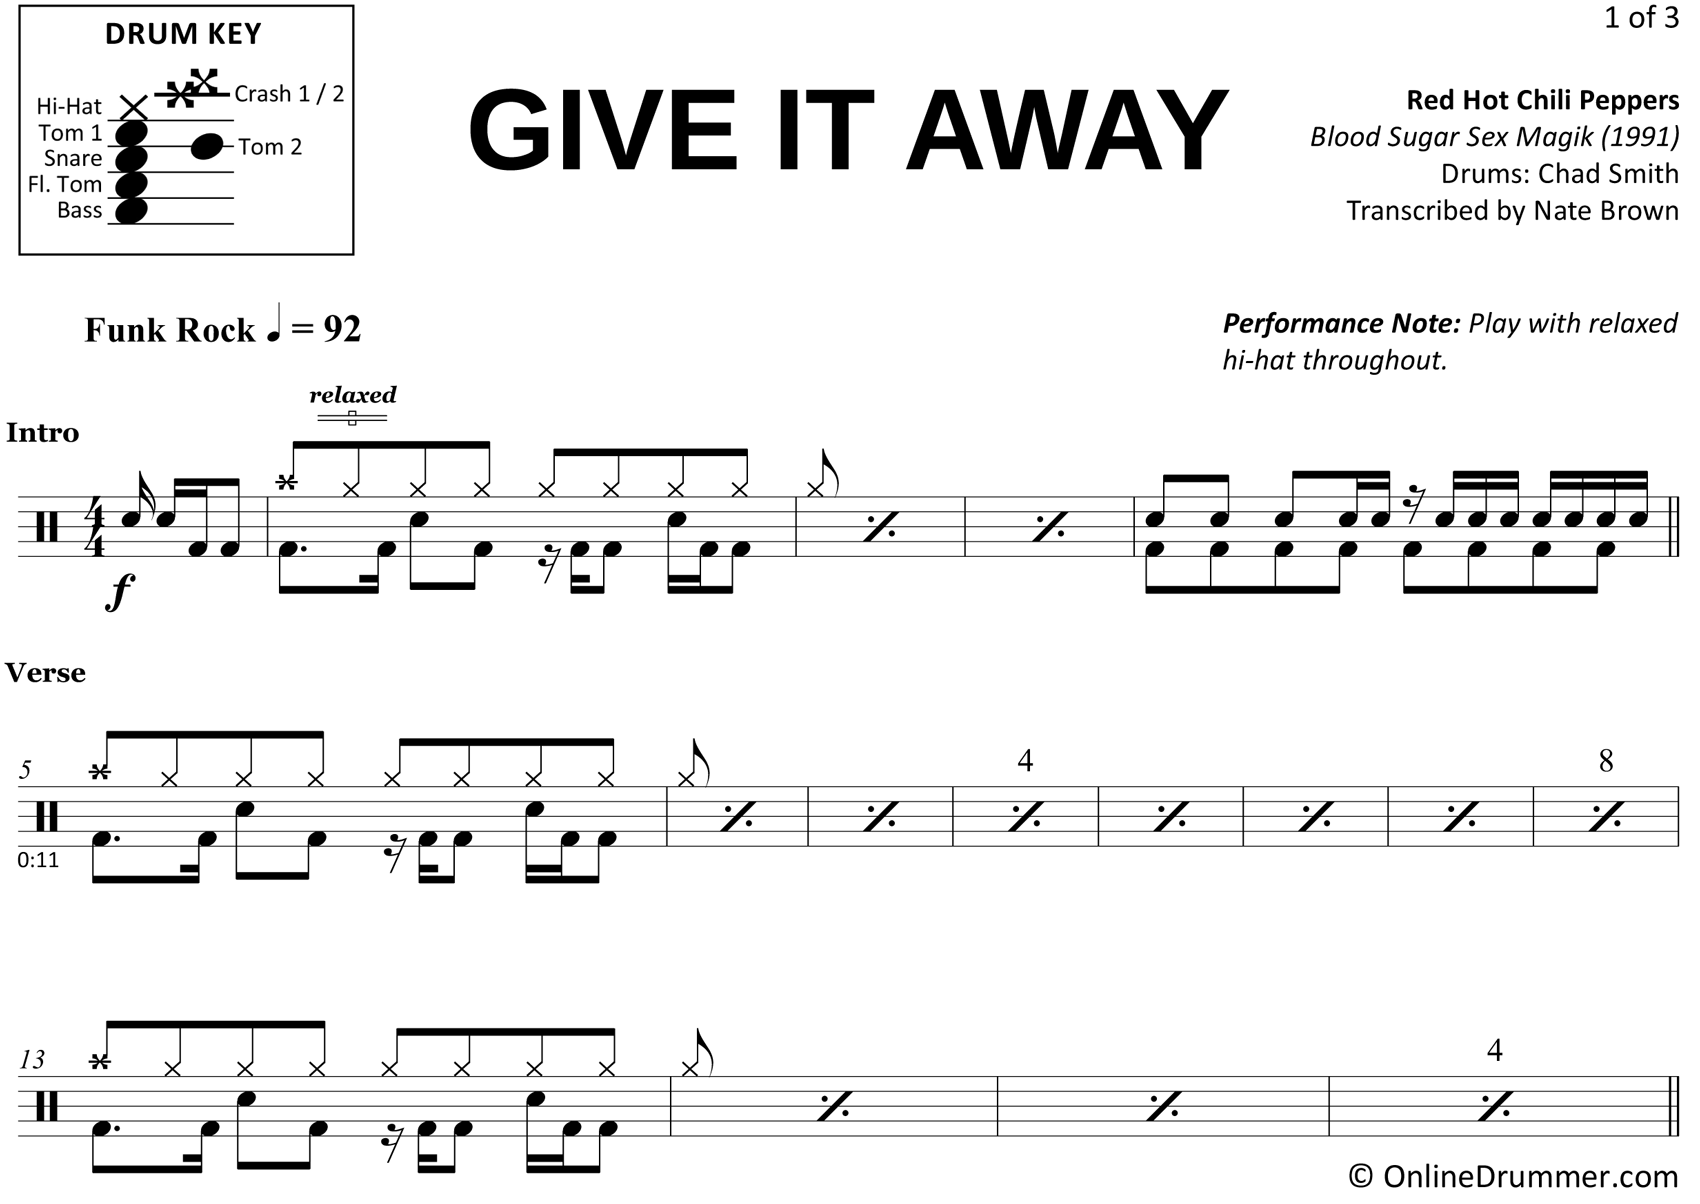 Give It Away - Red Hot Chili Peppers - Drum Sheet Music